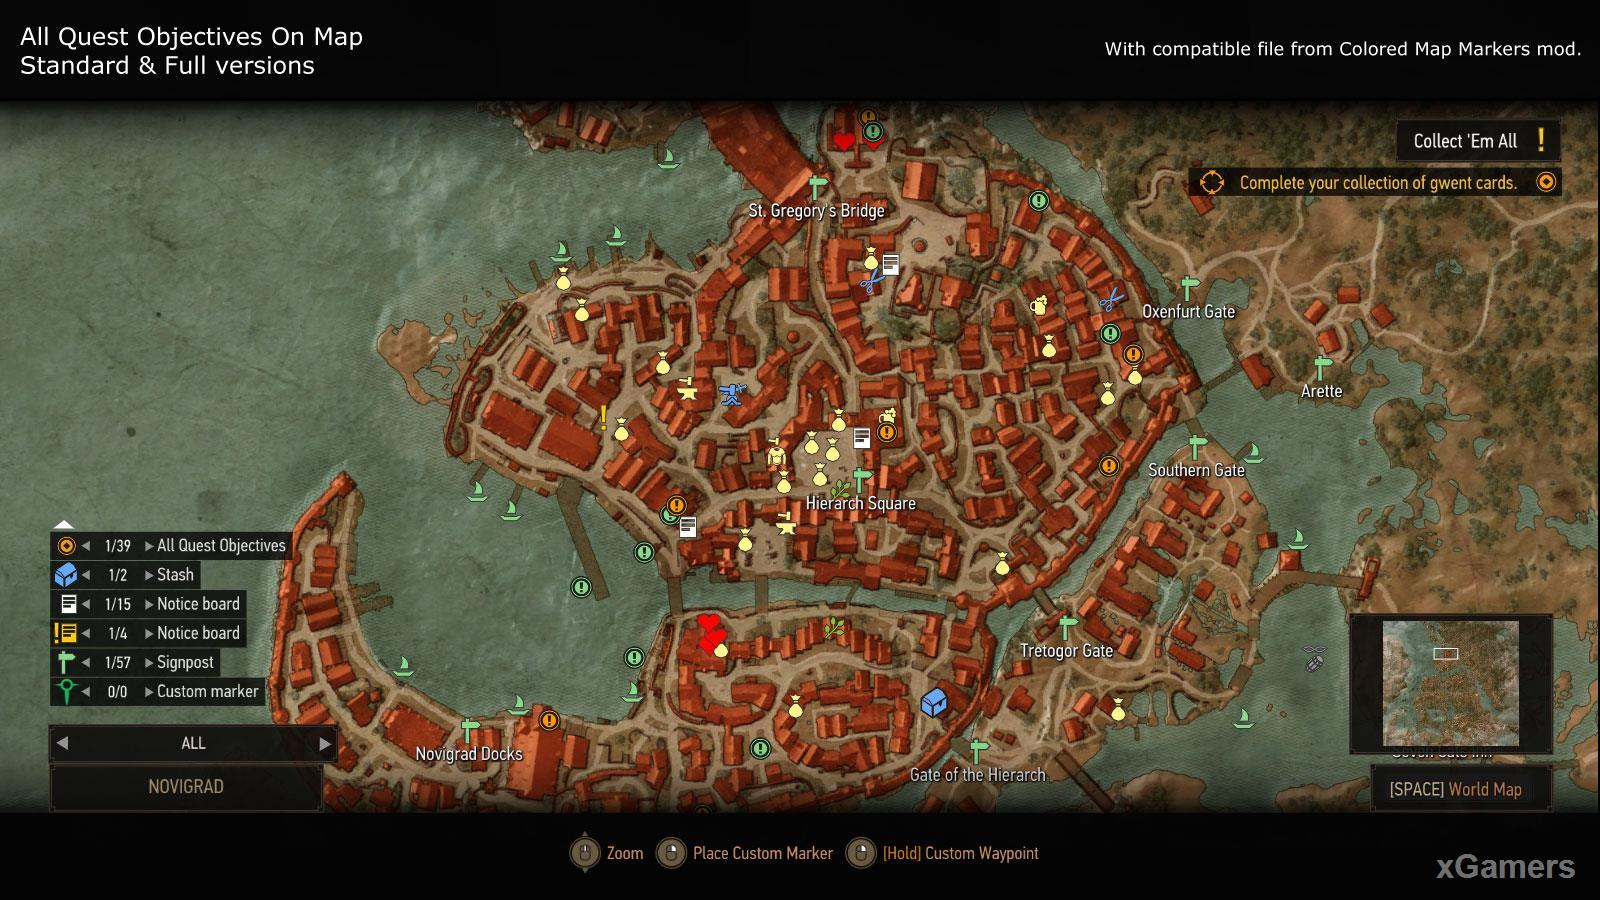 Mod: All Quest Objectives On Map